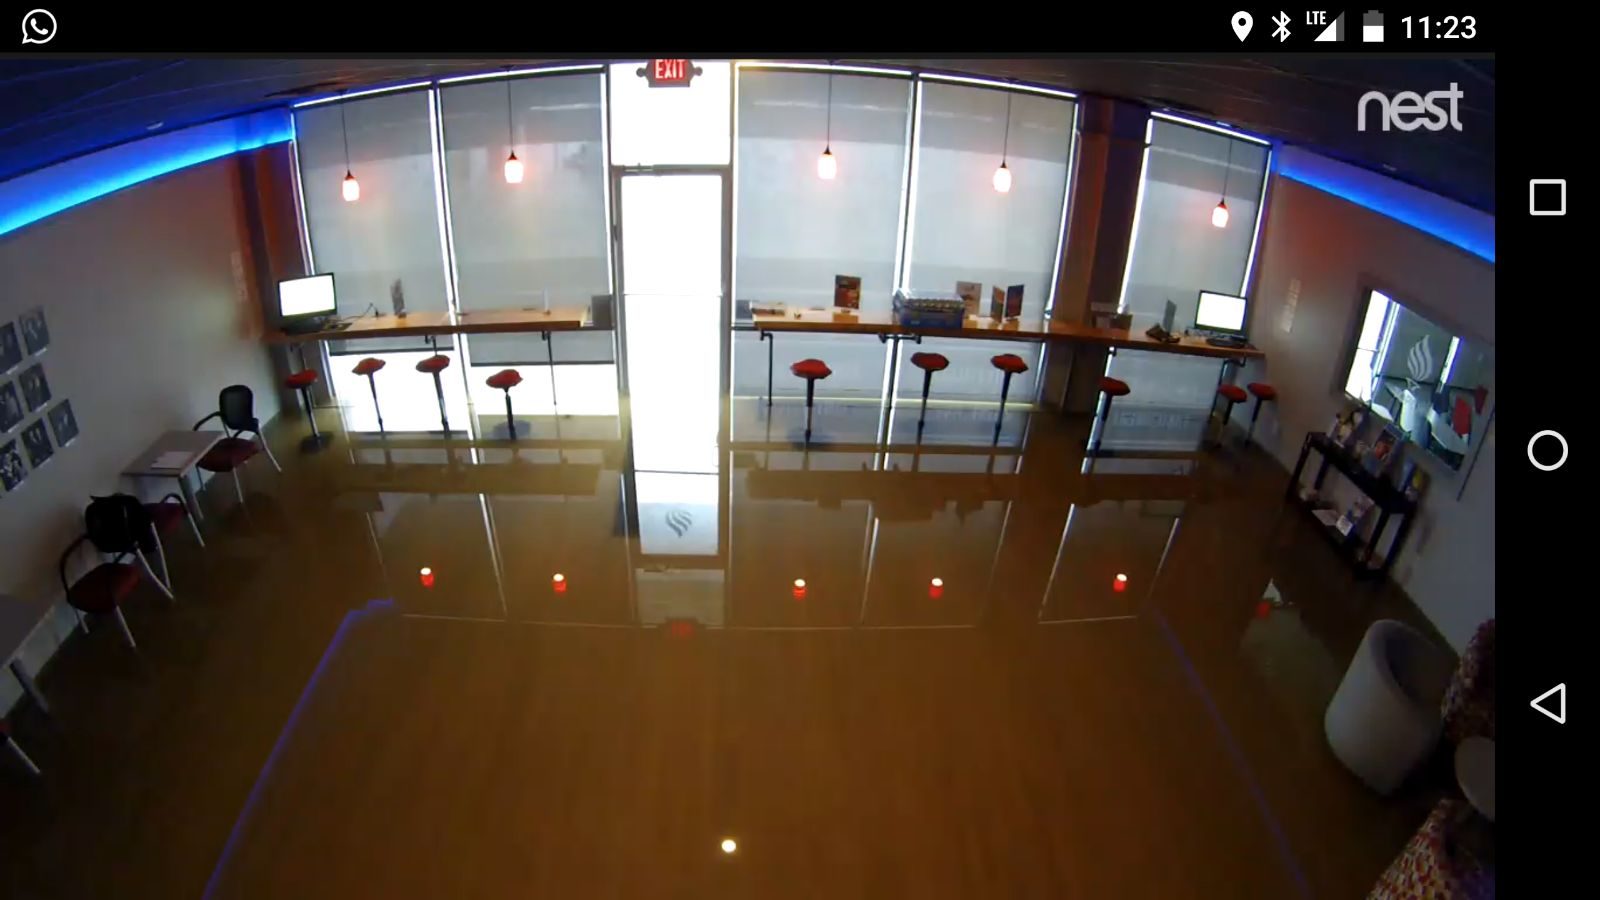 TORCH Centre security cameras capture the rising waters